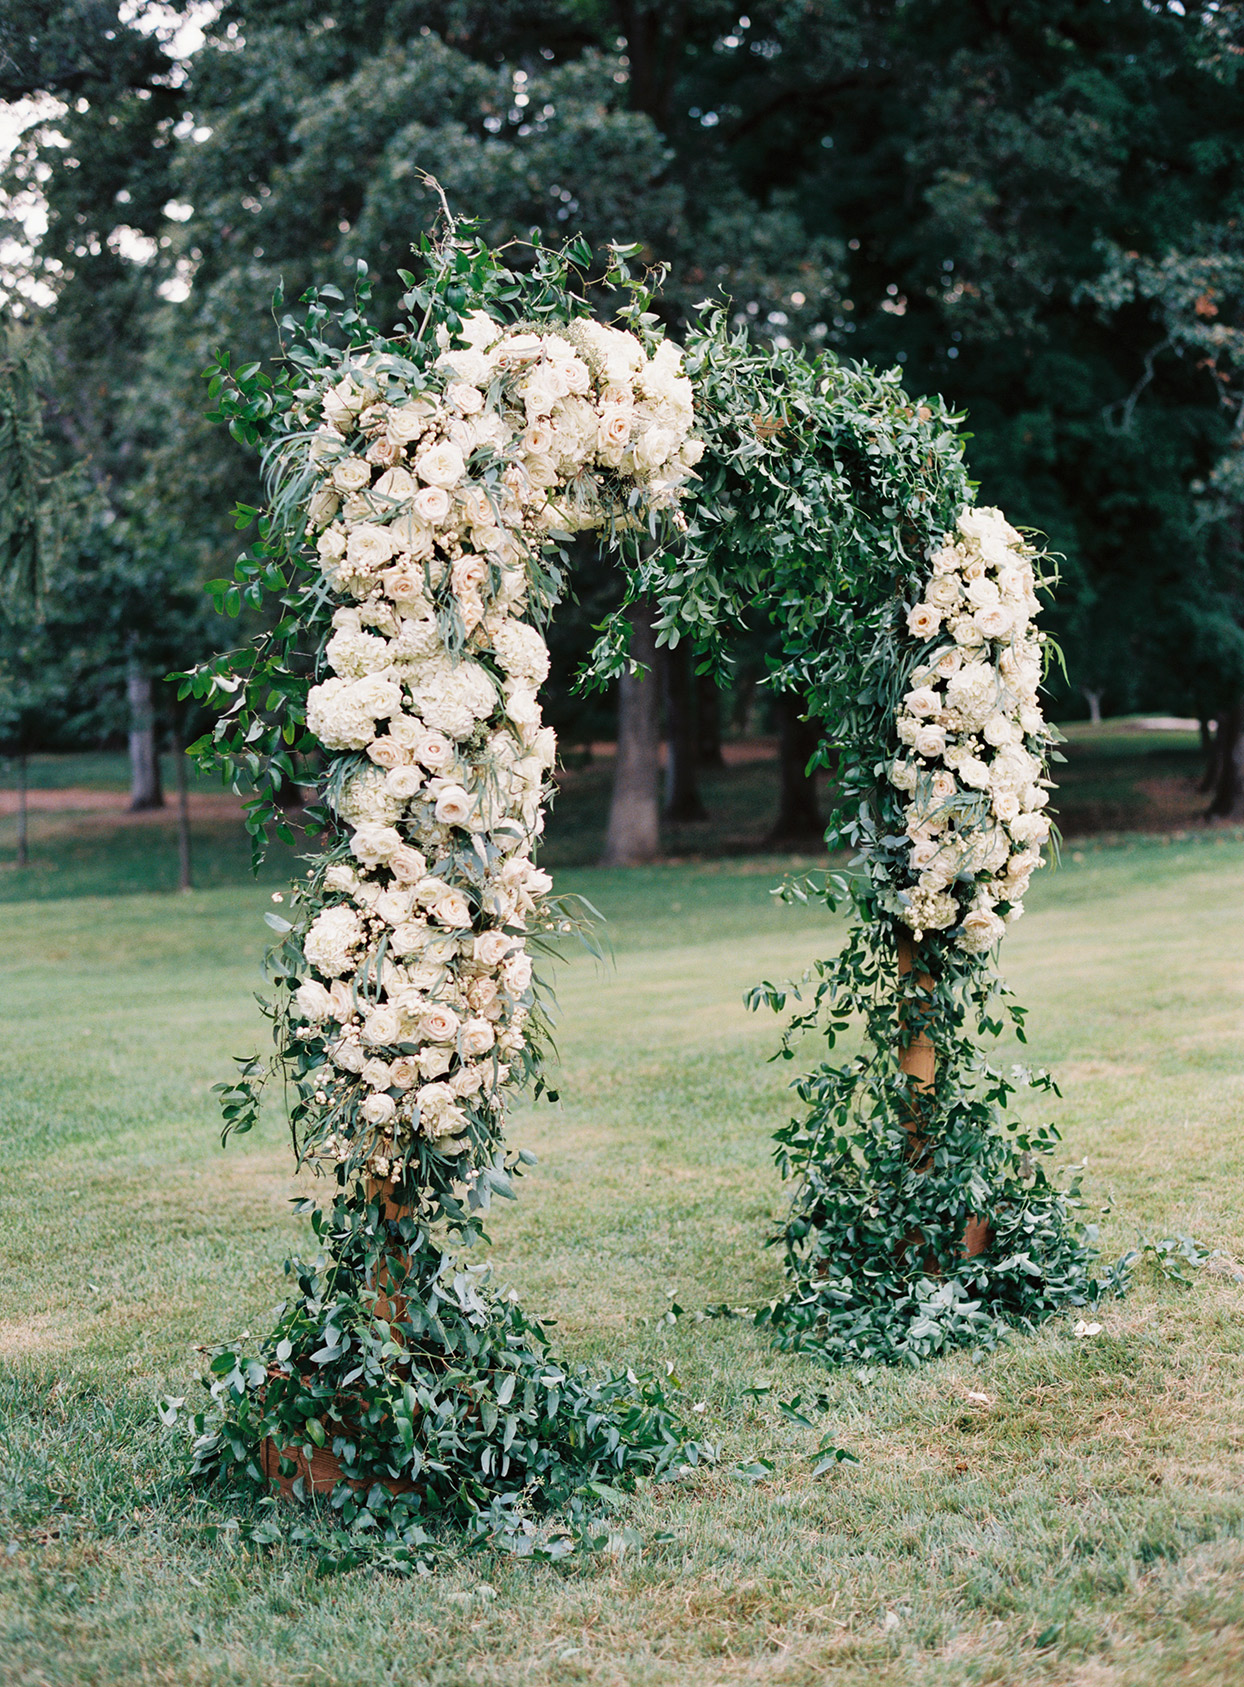 lauren chris wedding ceremony greenery and white roses arch in grass